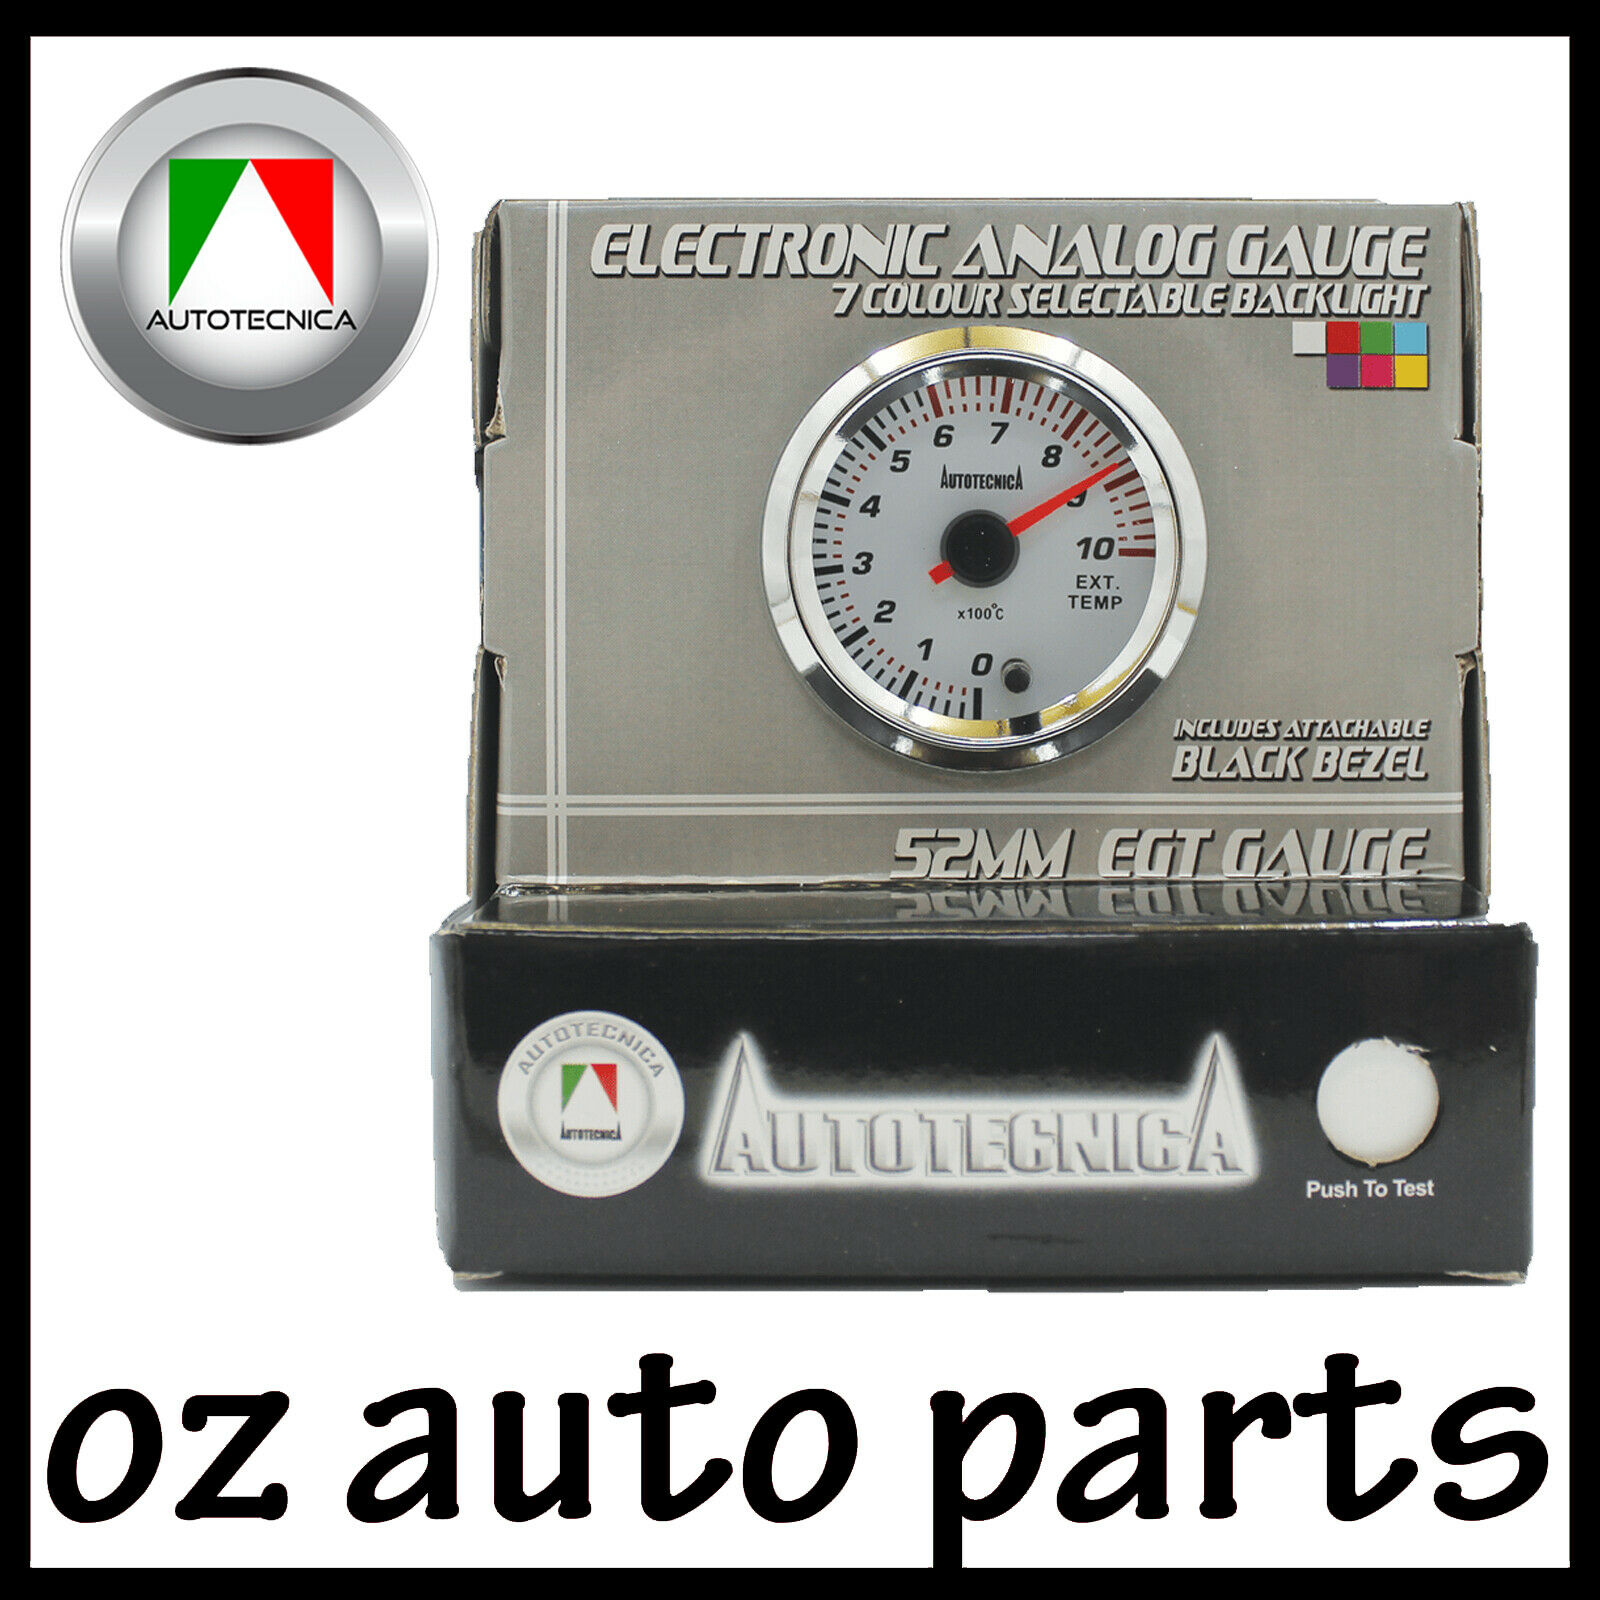 OIL PRESSURE Electronic Analogue White Face Gauge by Autotecnica 52mm 7 Colours